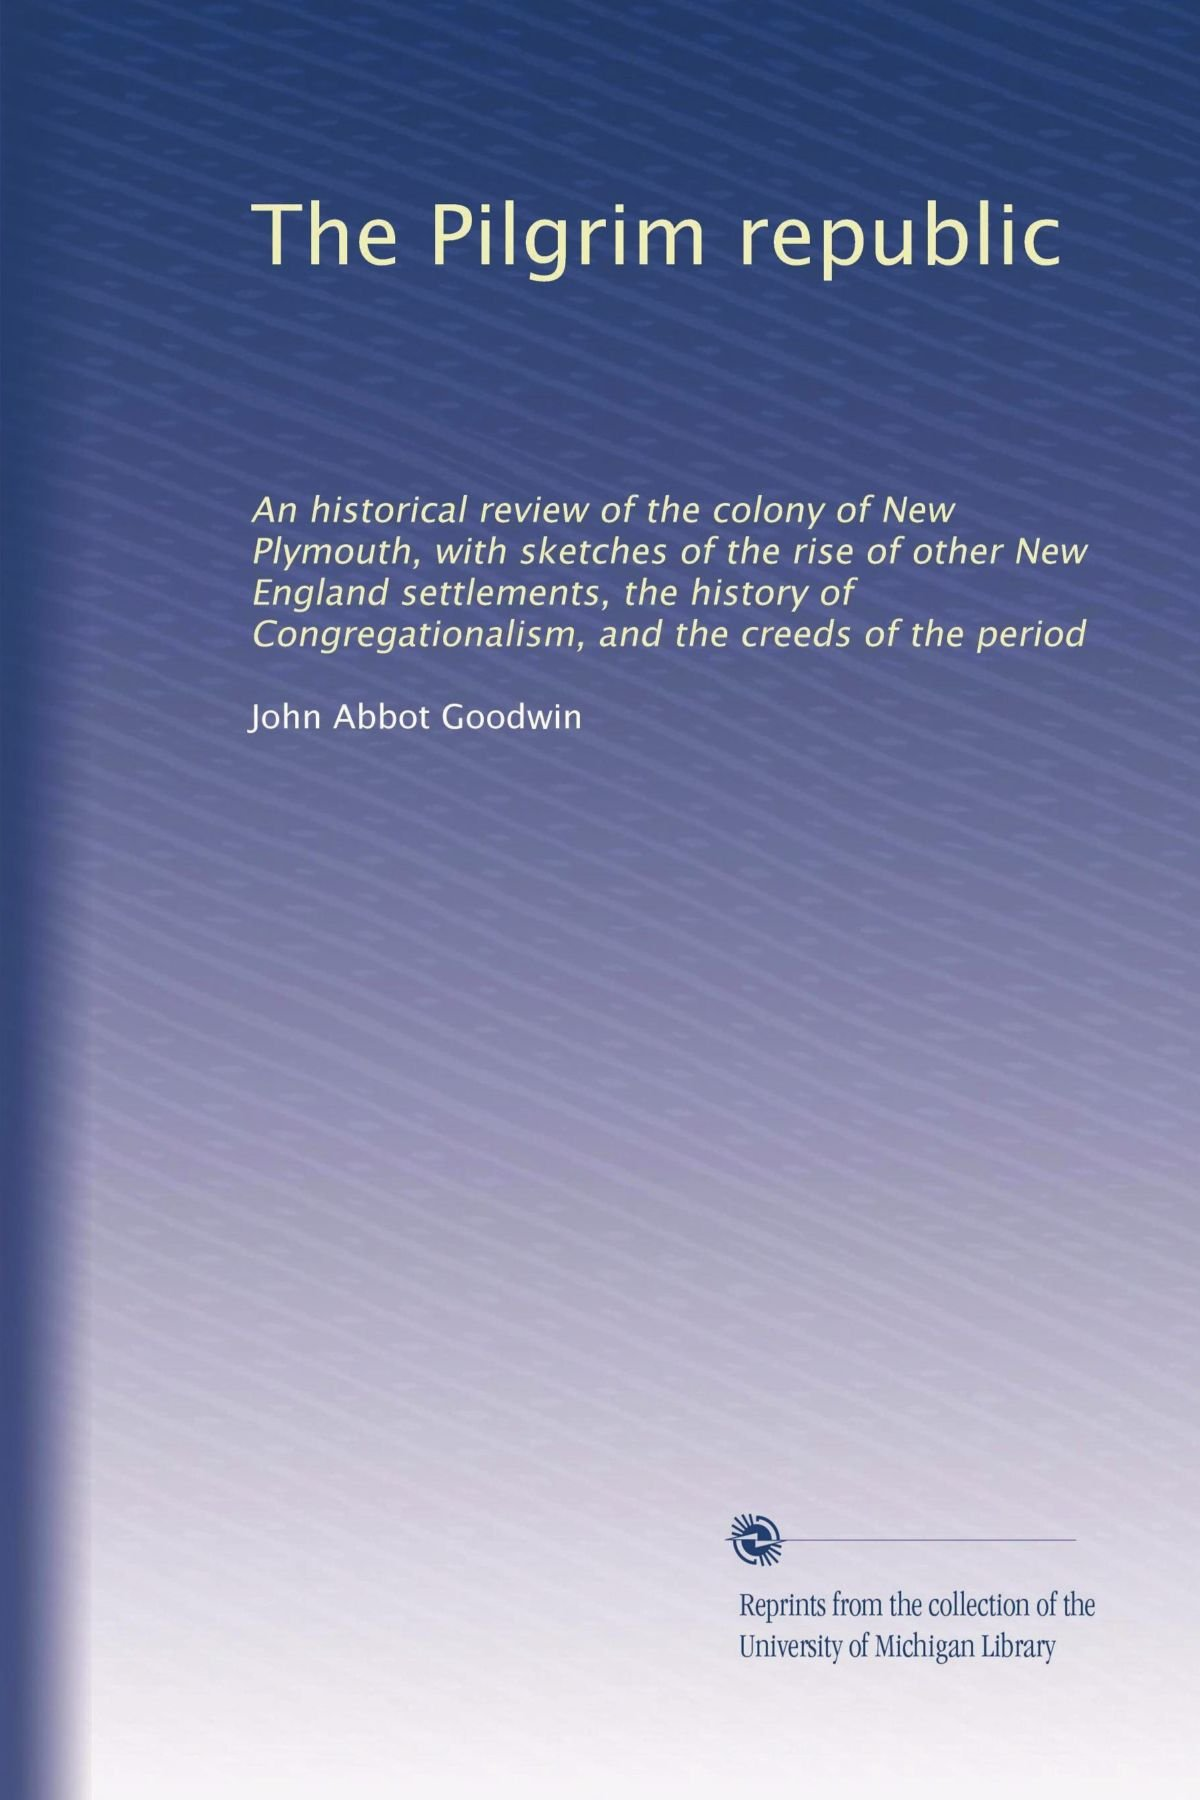 The Pilgrim republic: An historical review of the colony of New Plymouth, with sketches of the rise of other New England settlements, the history of Congregationalism, and the creeds of the period pdf